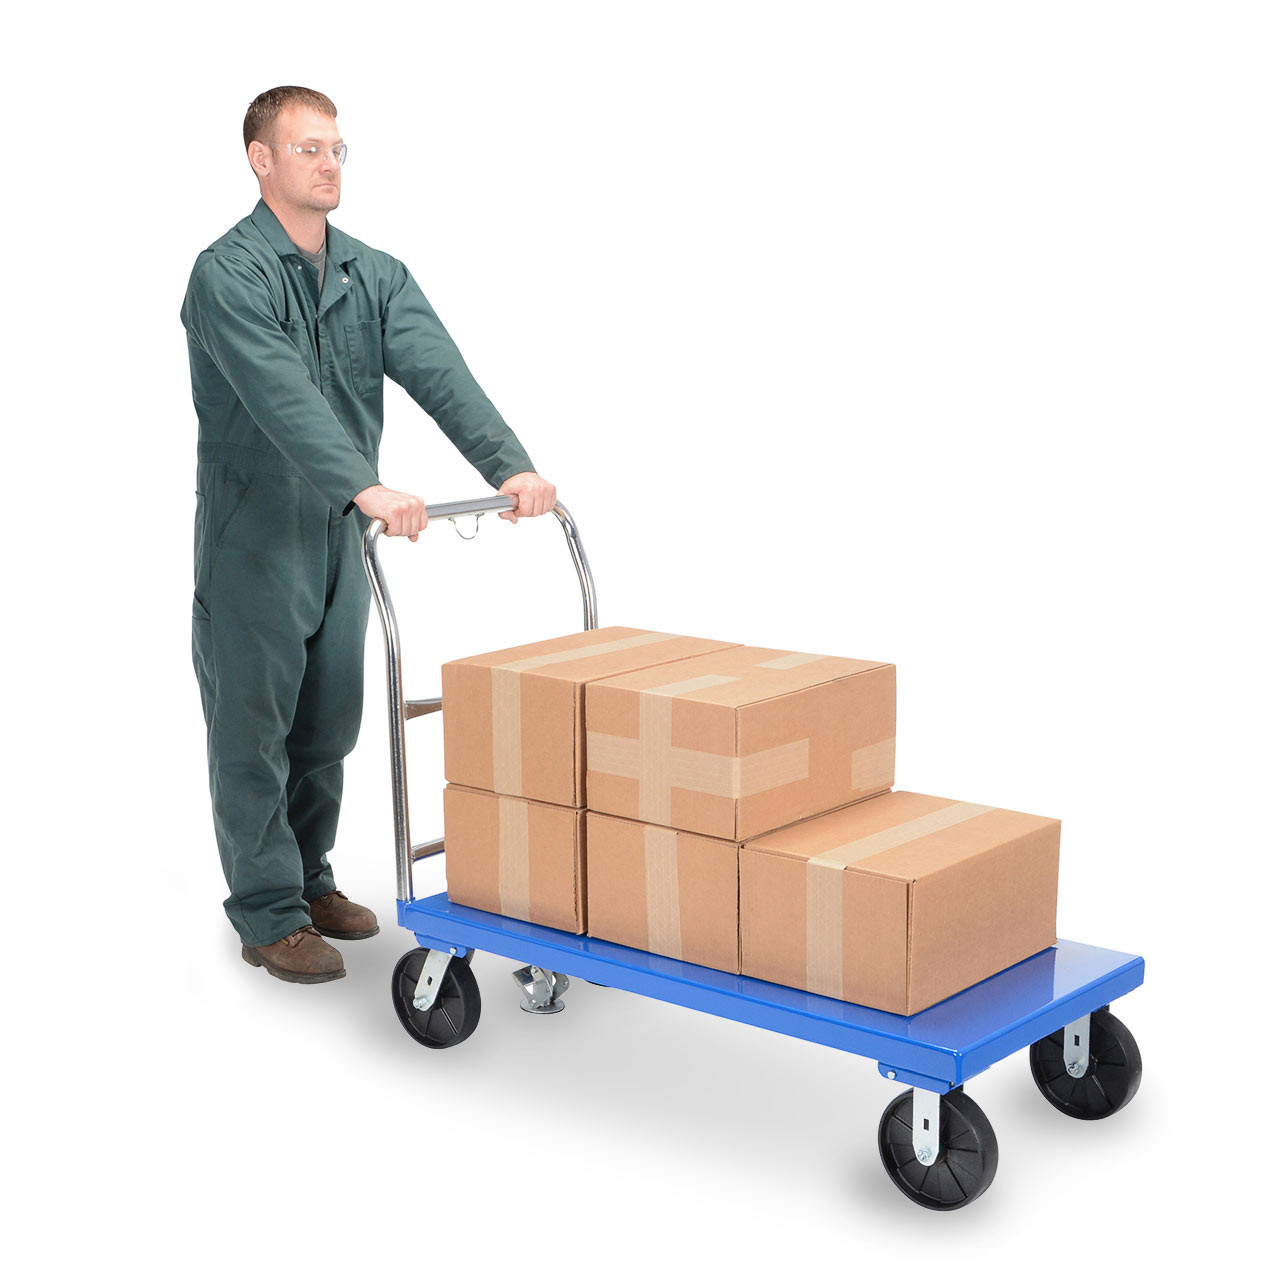 Steel platform carts roll smoothly to transport even delicate items